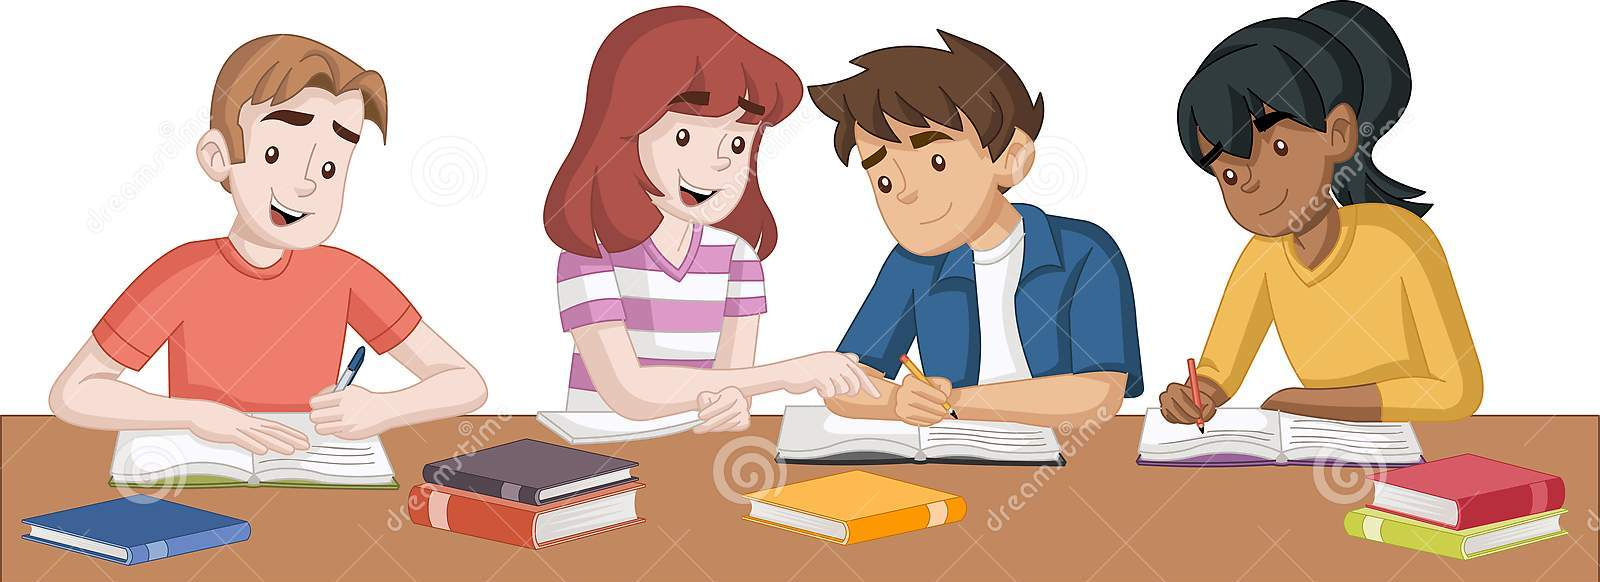 cartoon-teenager-students-books-kids-studying-134763679